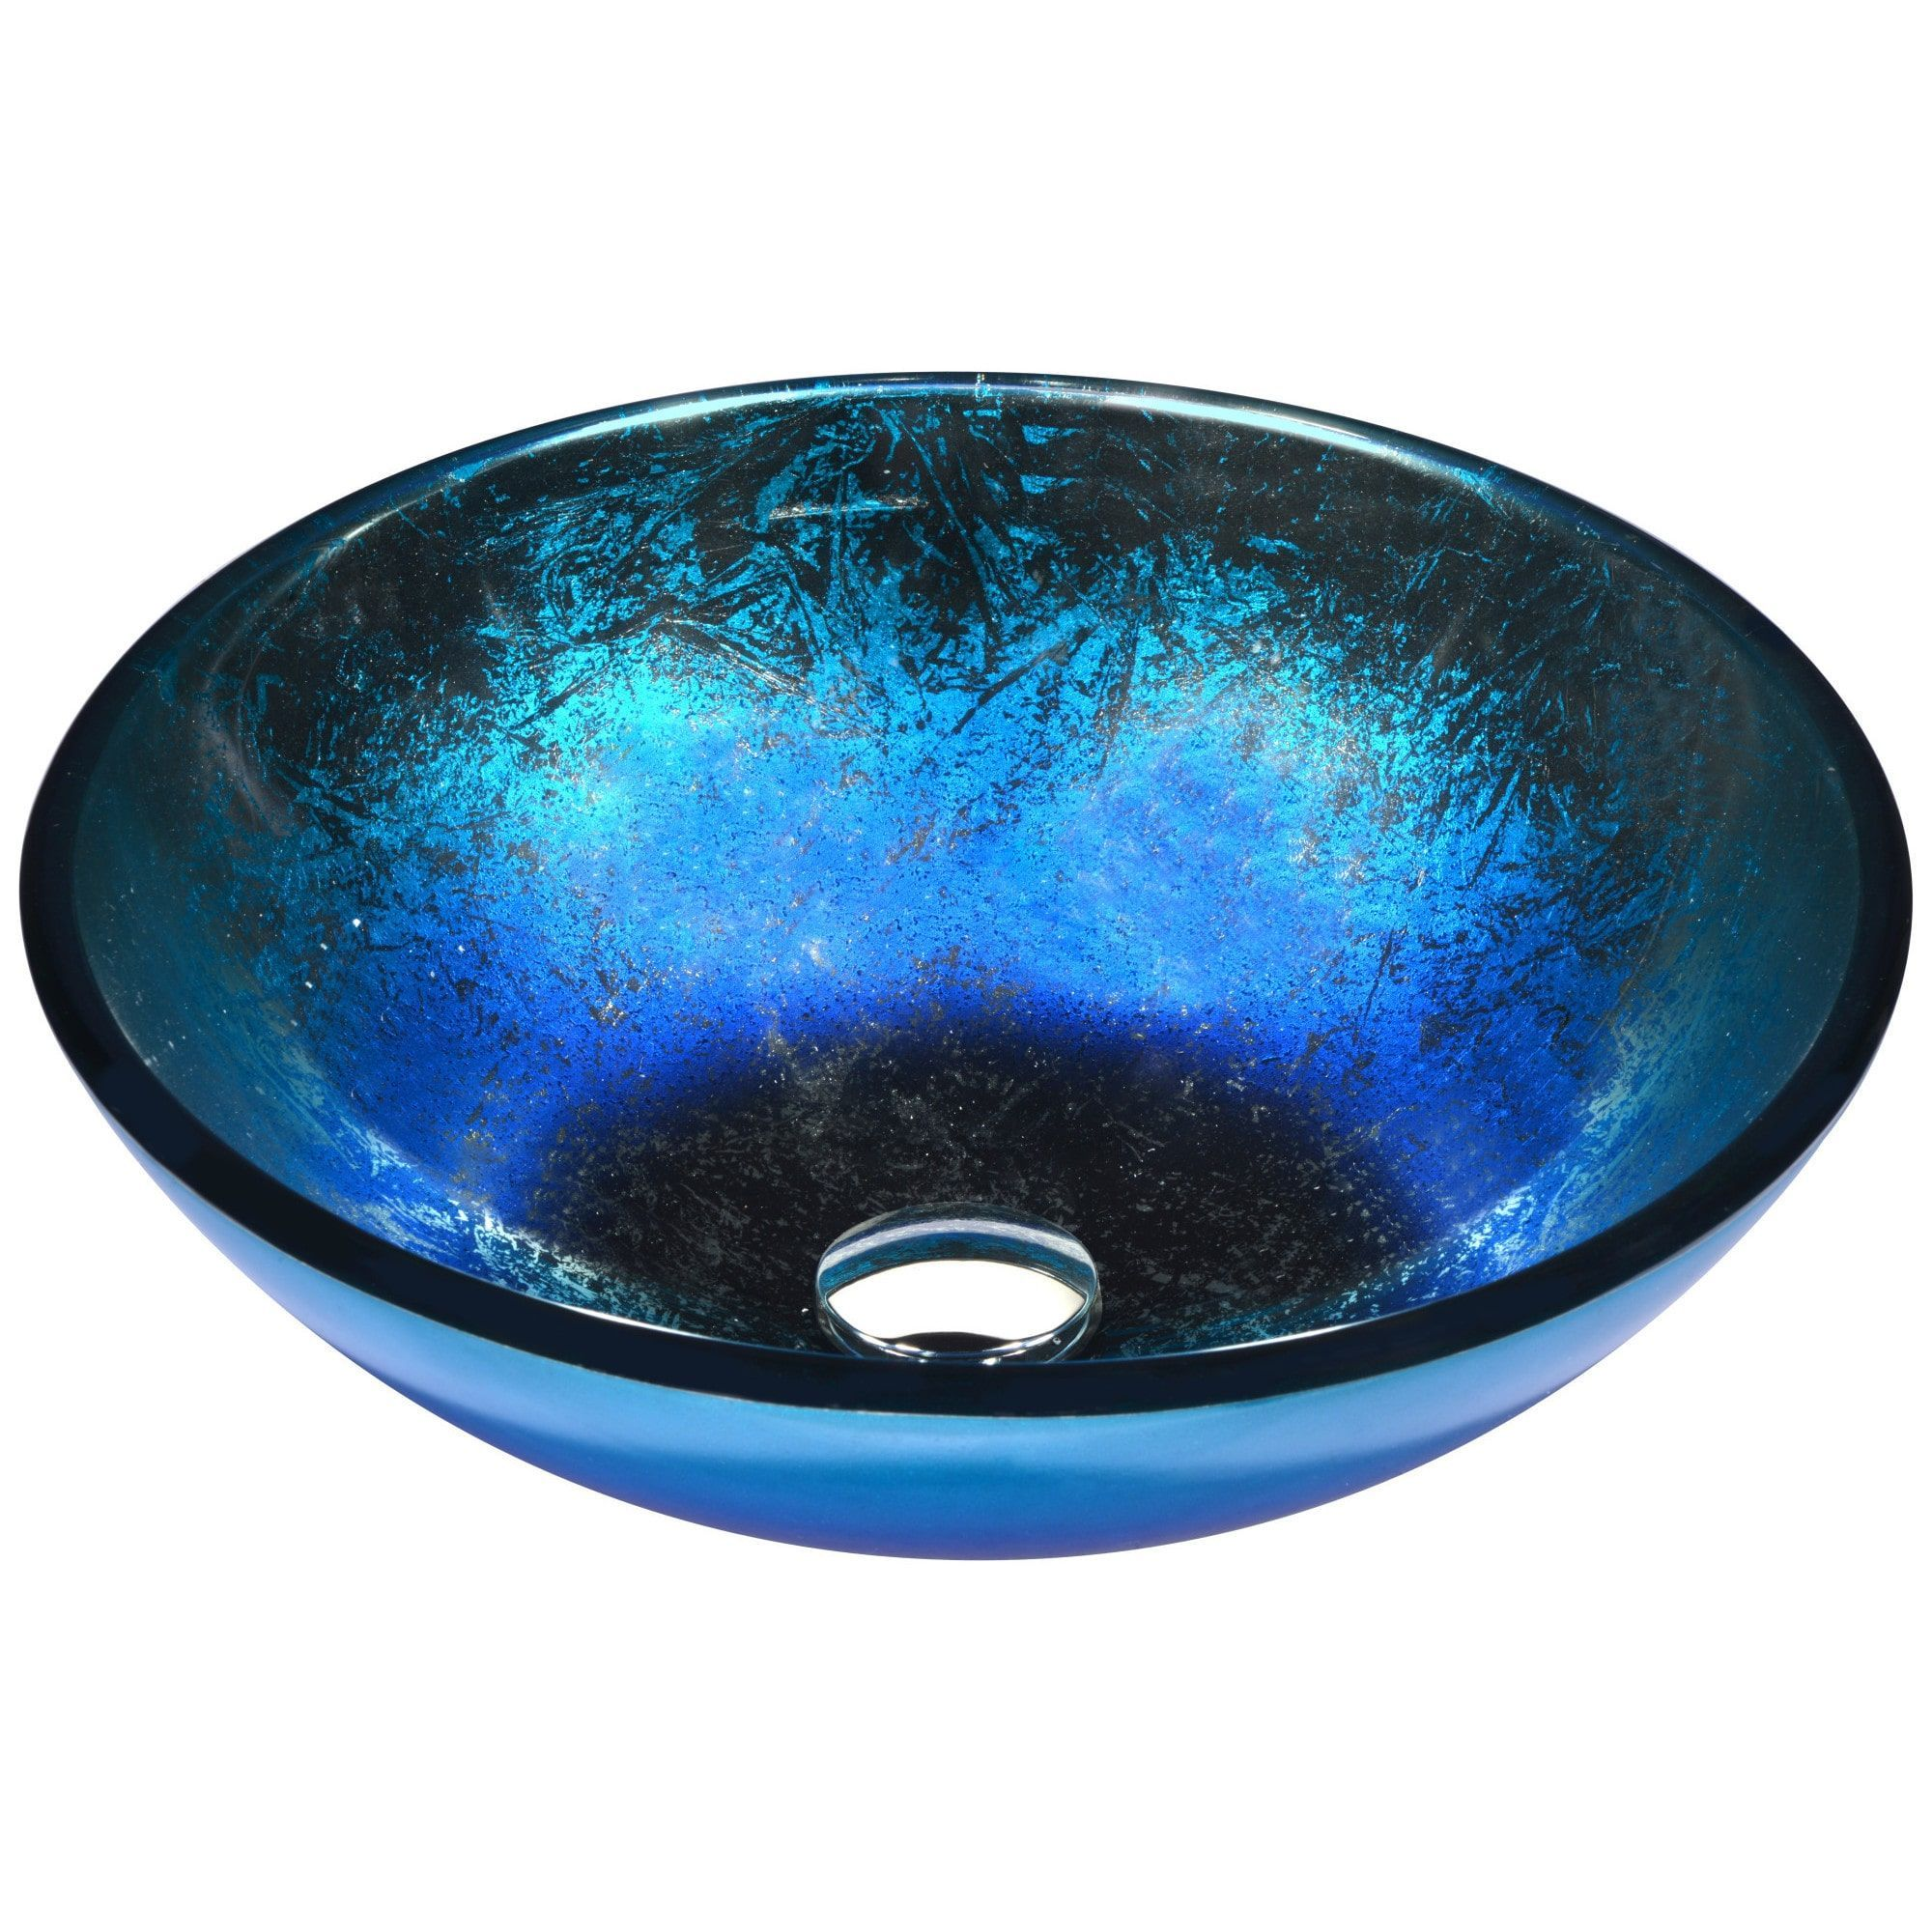 Anzzi Oceana Series Vessel Sink In Blue Blue In 2019 Vessel Sink Glass Vessel Sinks Glass Sink